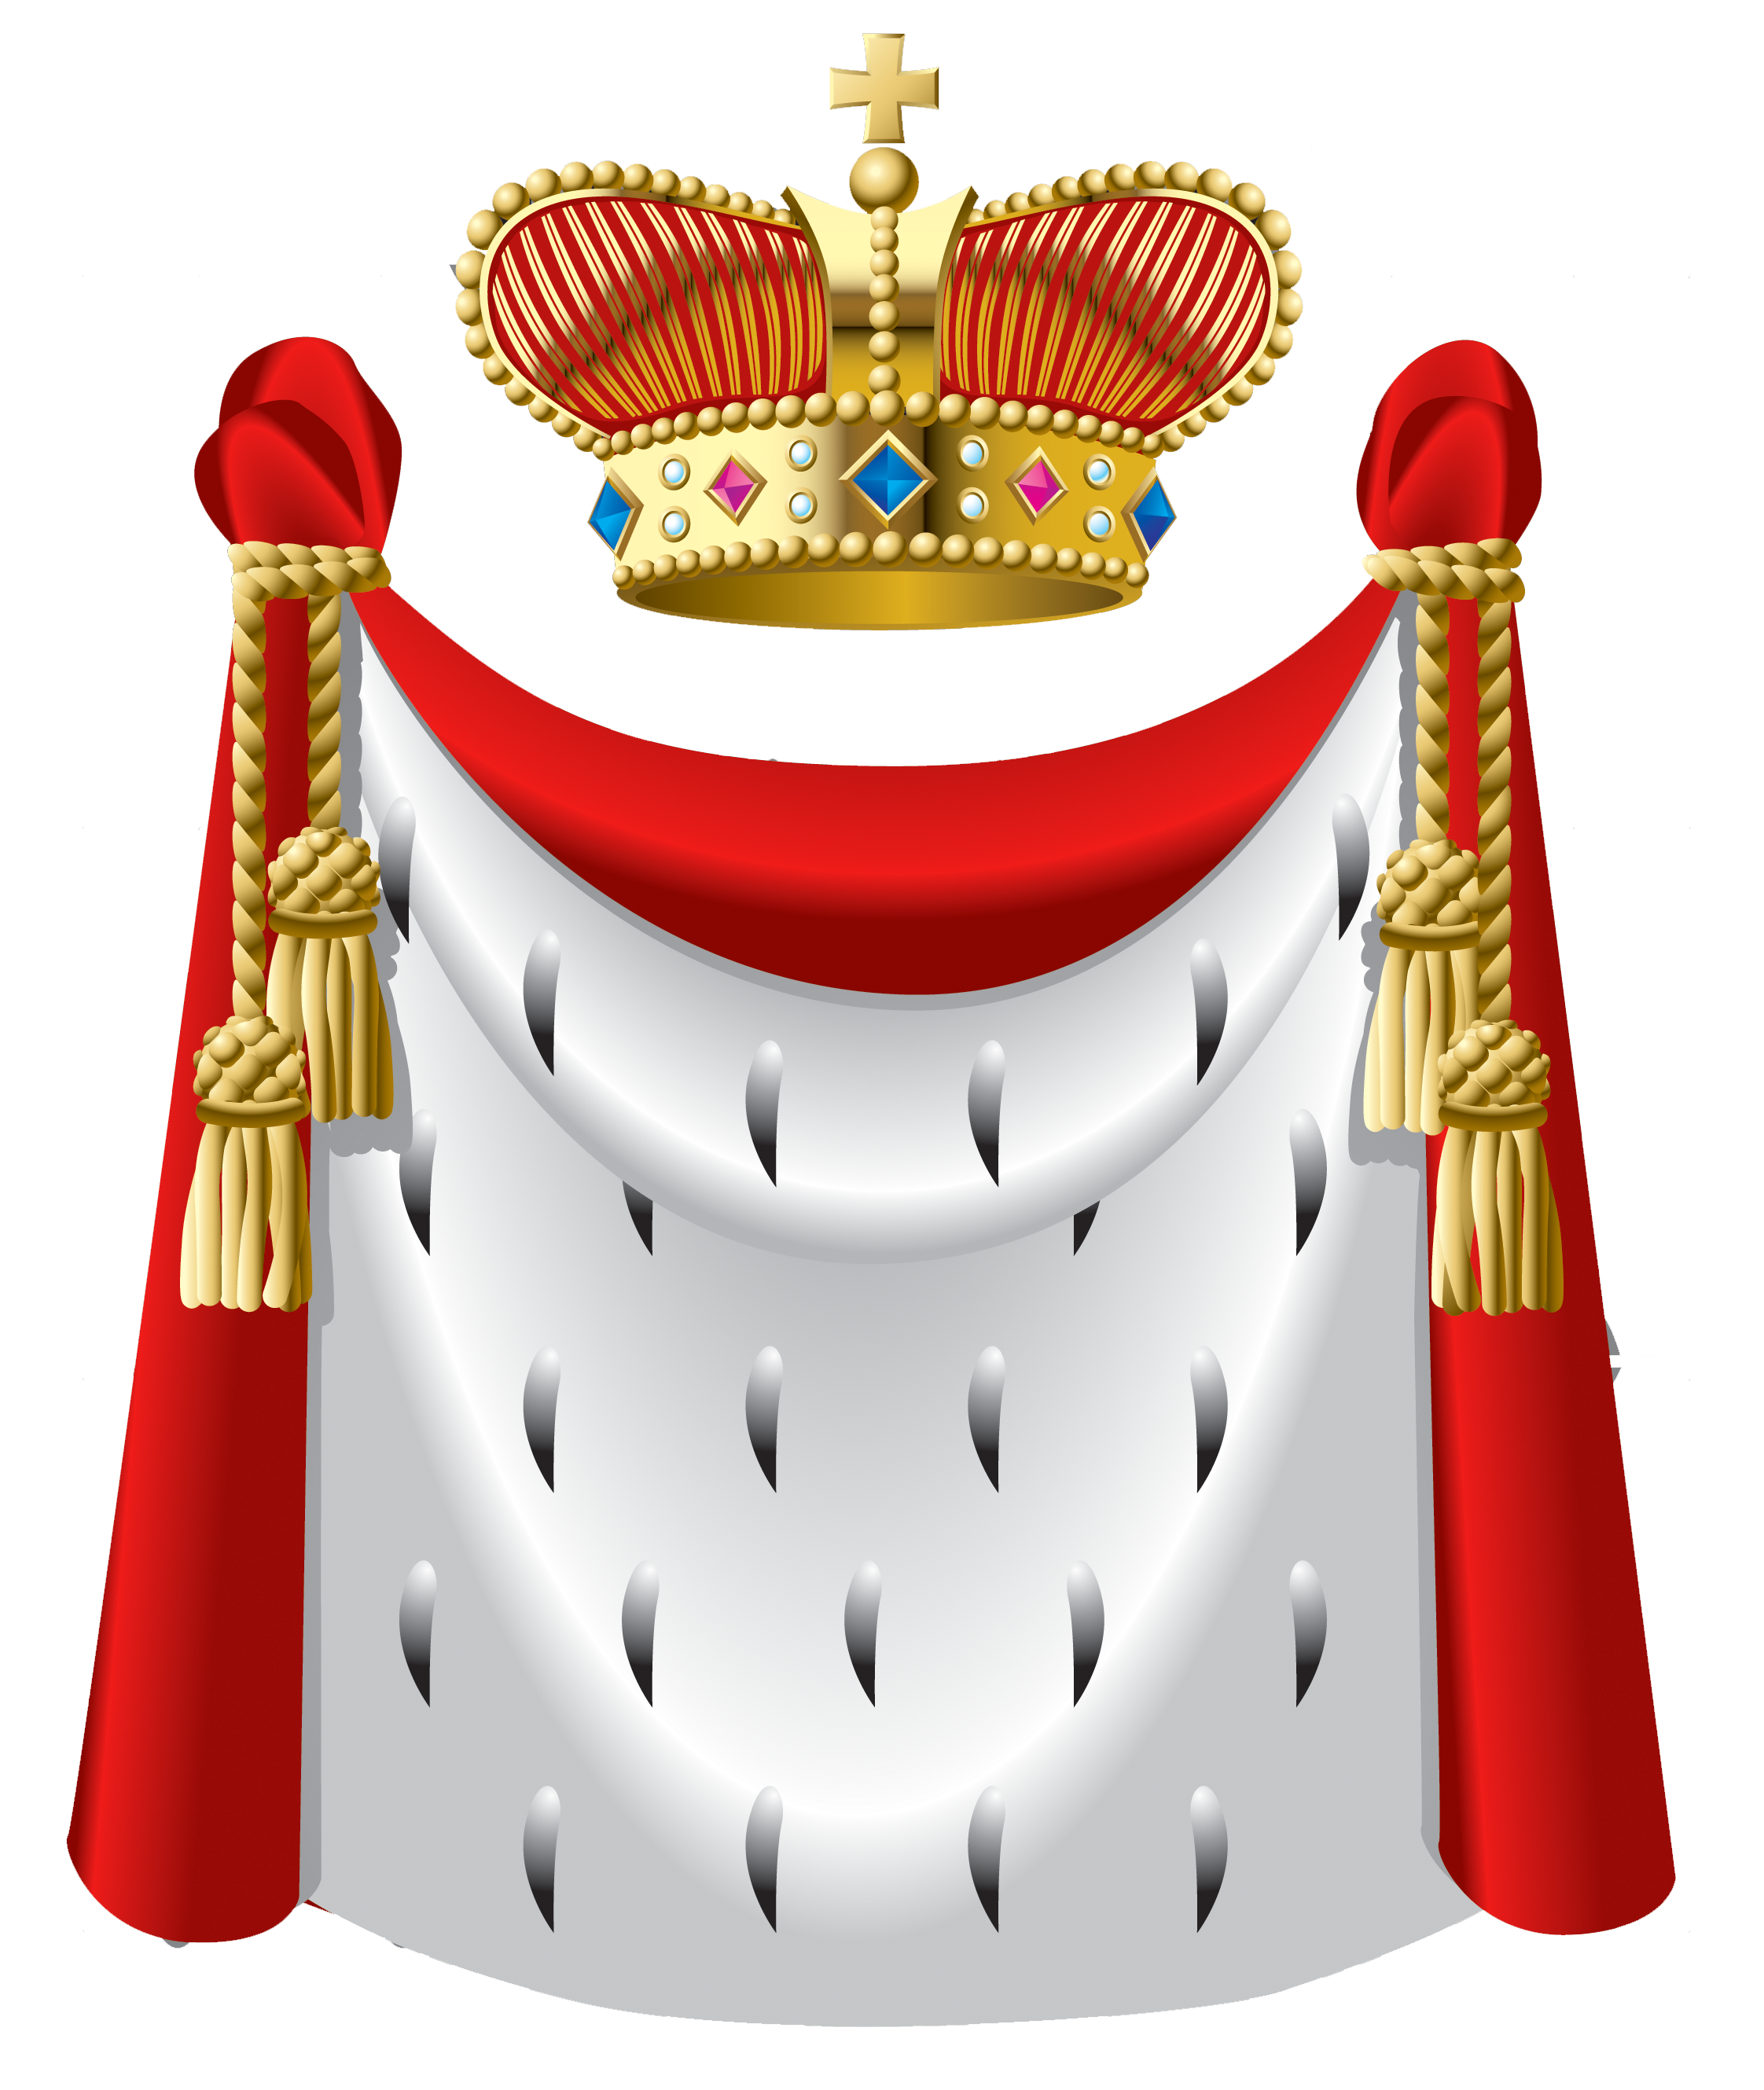 Queen crown clipart graphic library Crown King - ClipArt Best graphic library